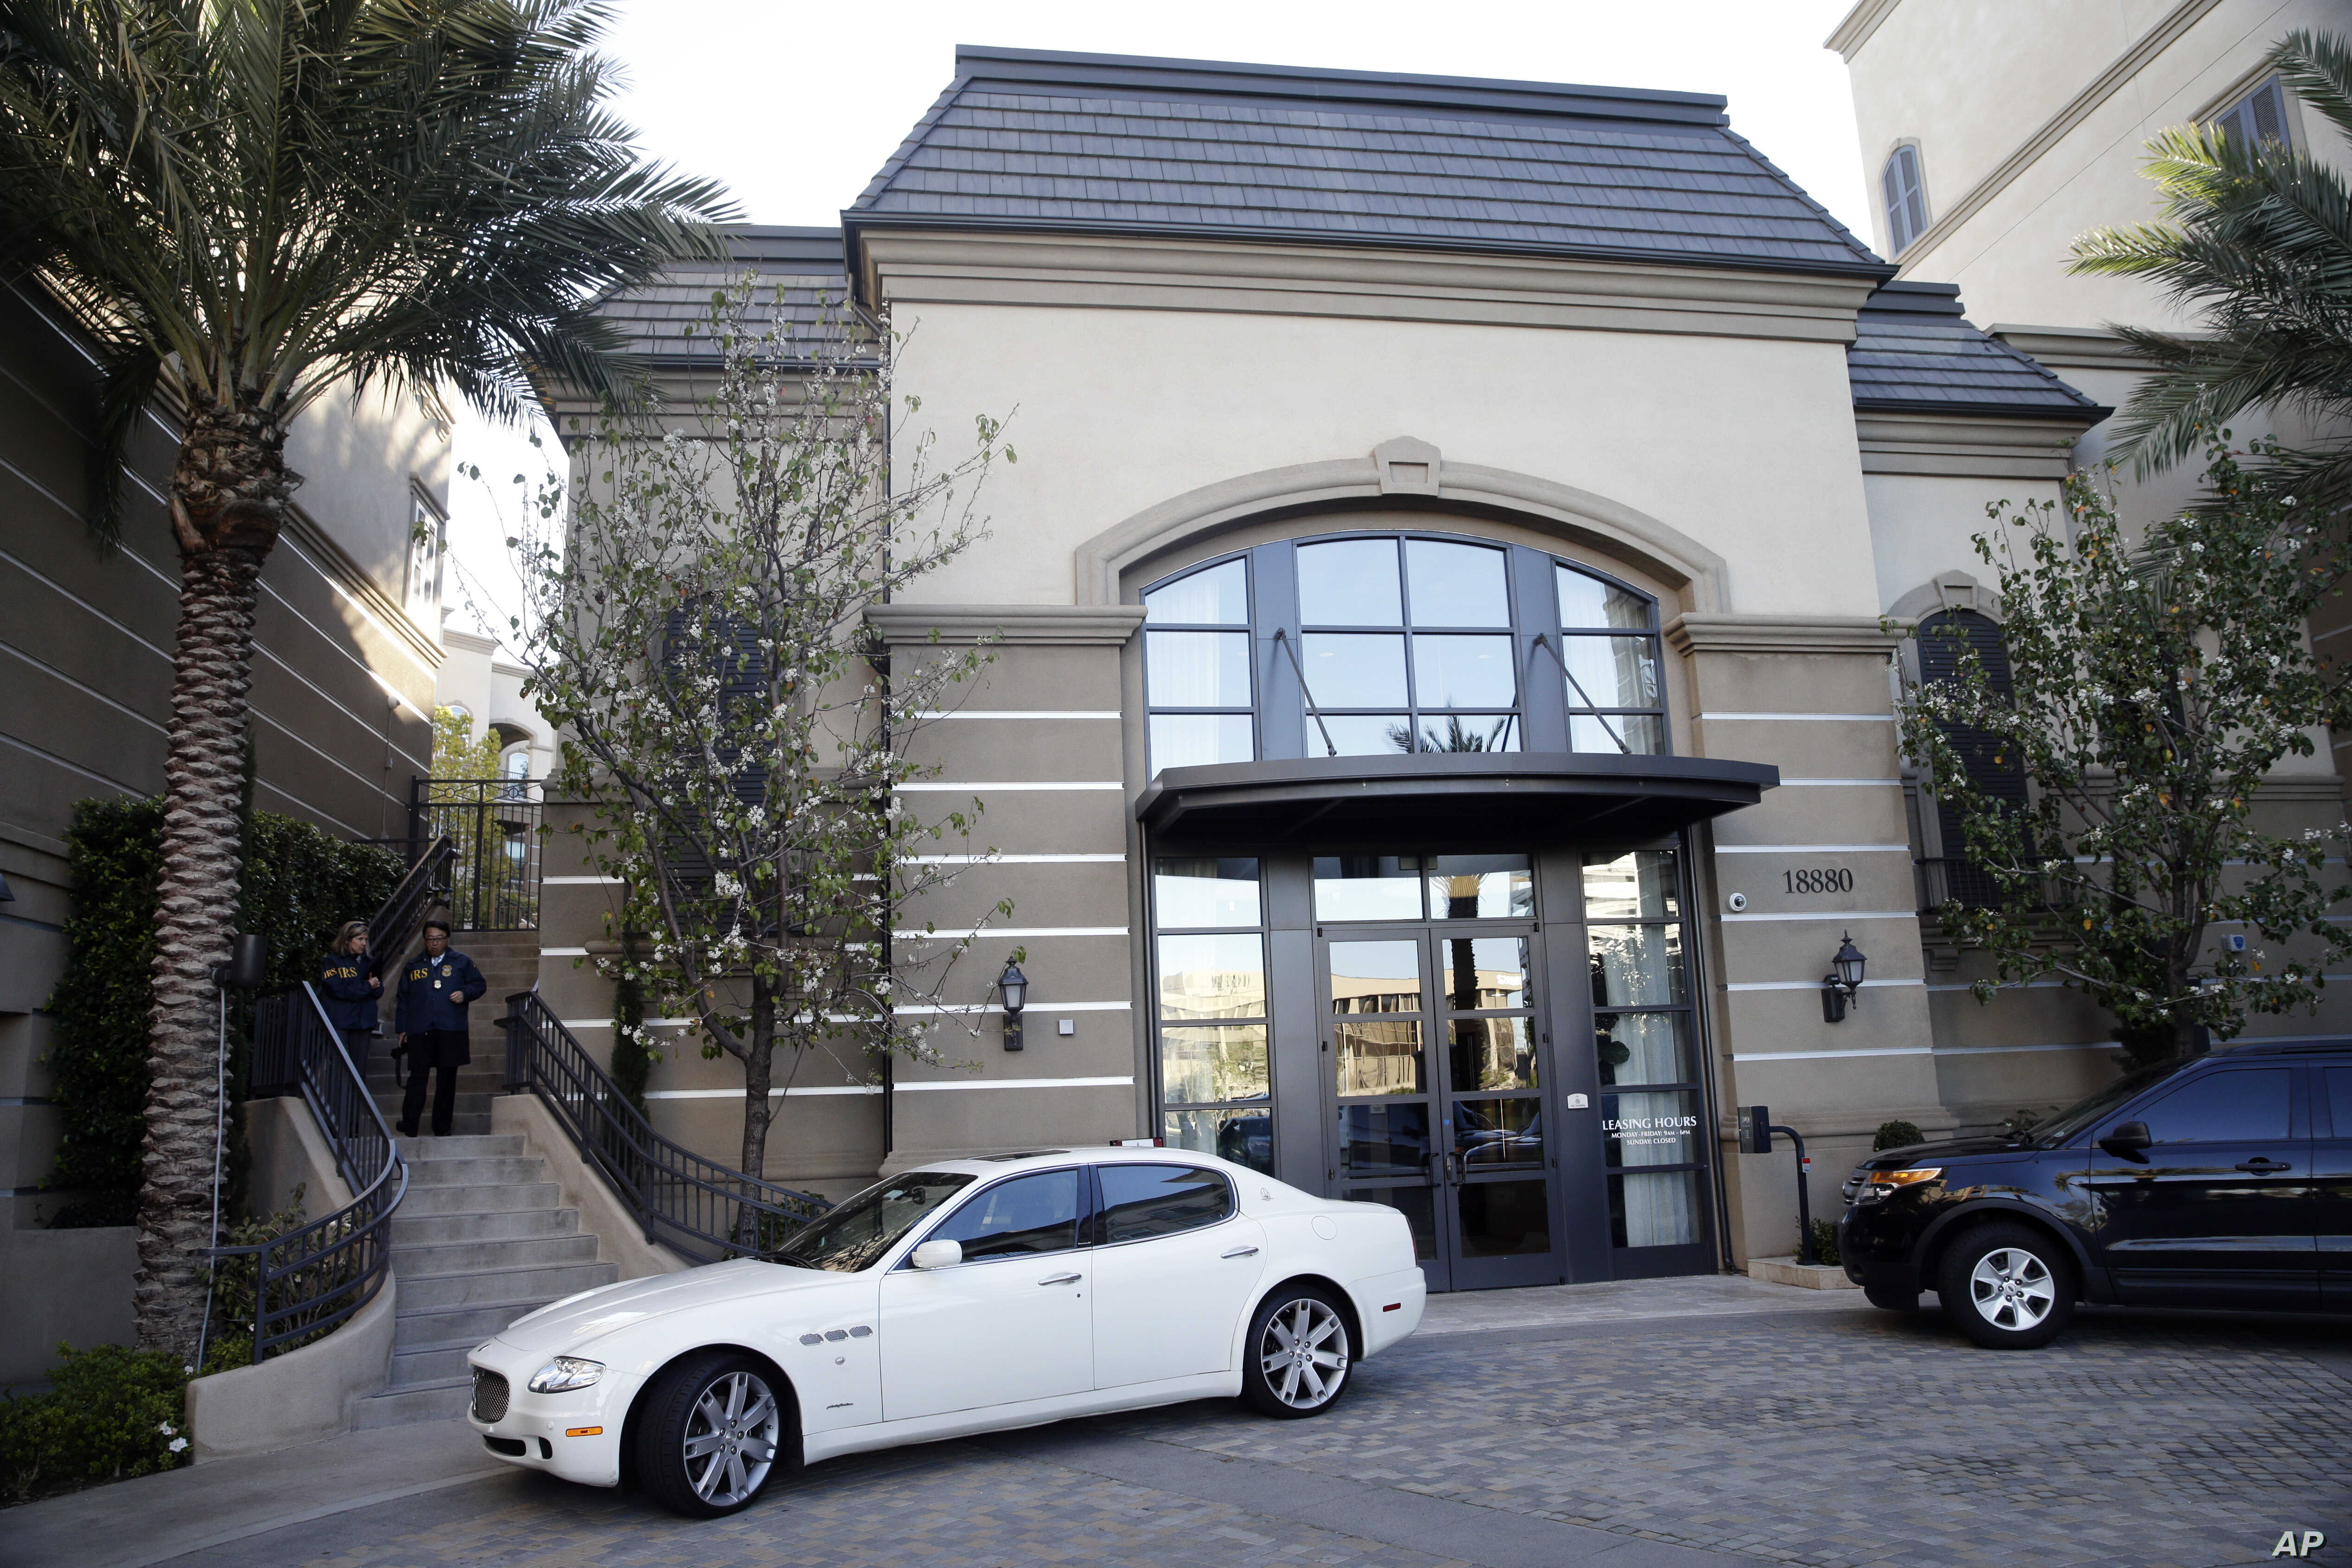 FILE - This March 3, 2015, photo shows an upscale apartment complex where authorities say a birth tourism business charged pregnant women for lodging, food and transportation, after it was raided in Irvine, Calif. On Jan. 31, 2019, authorities announ...